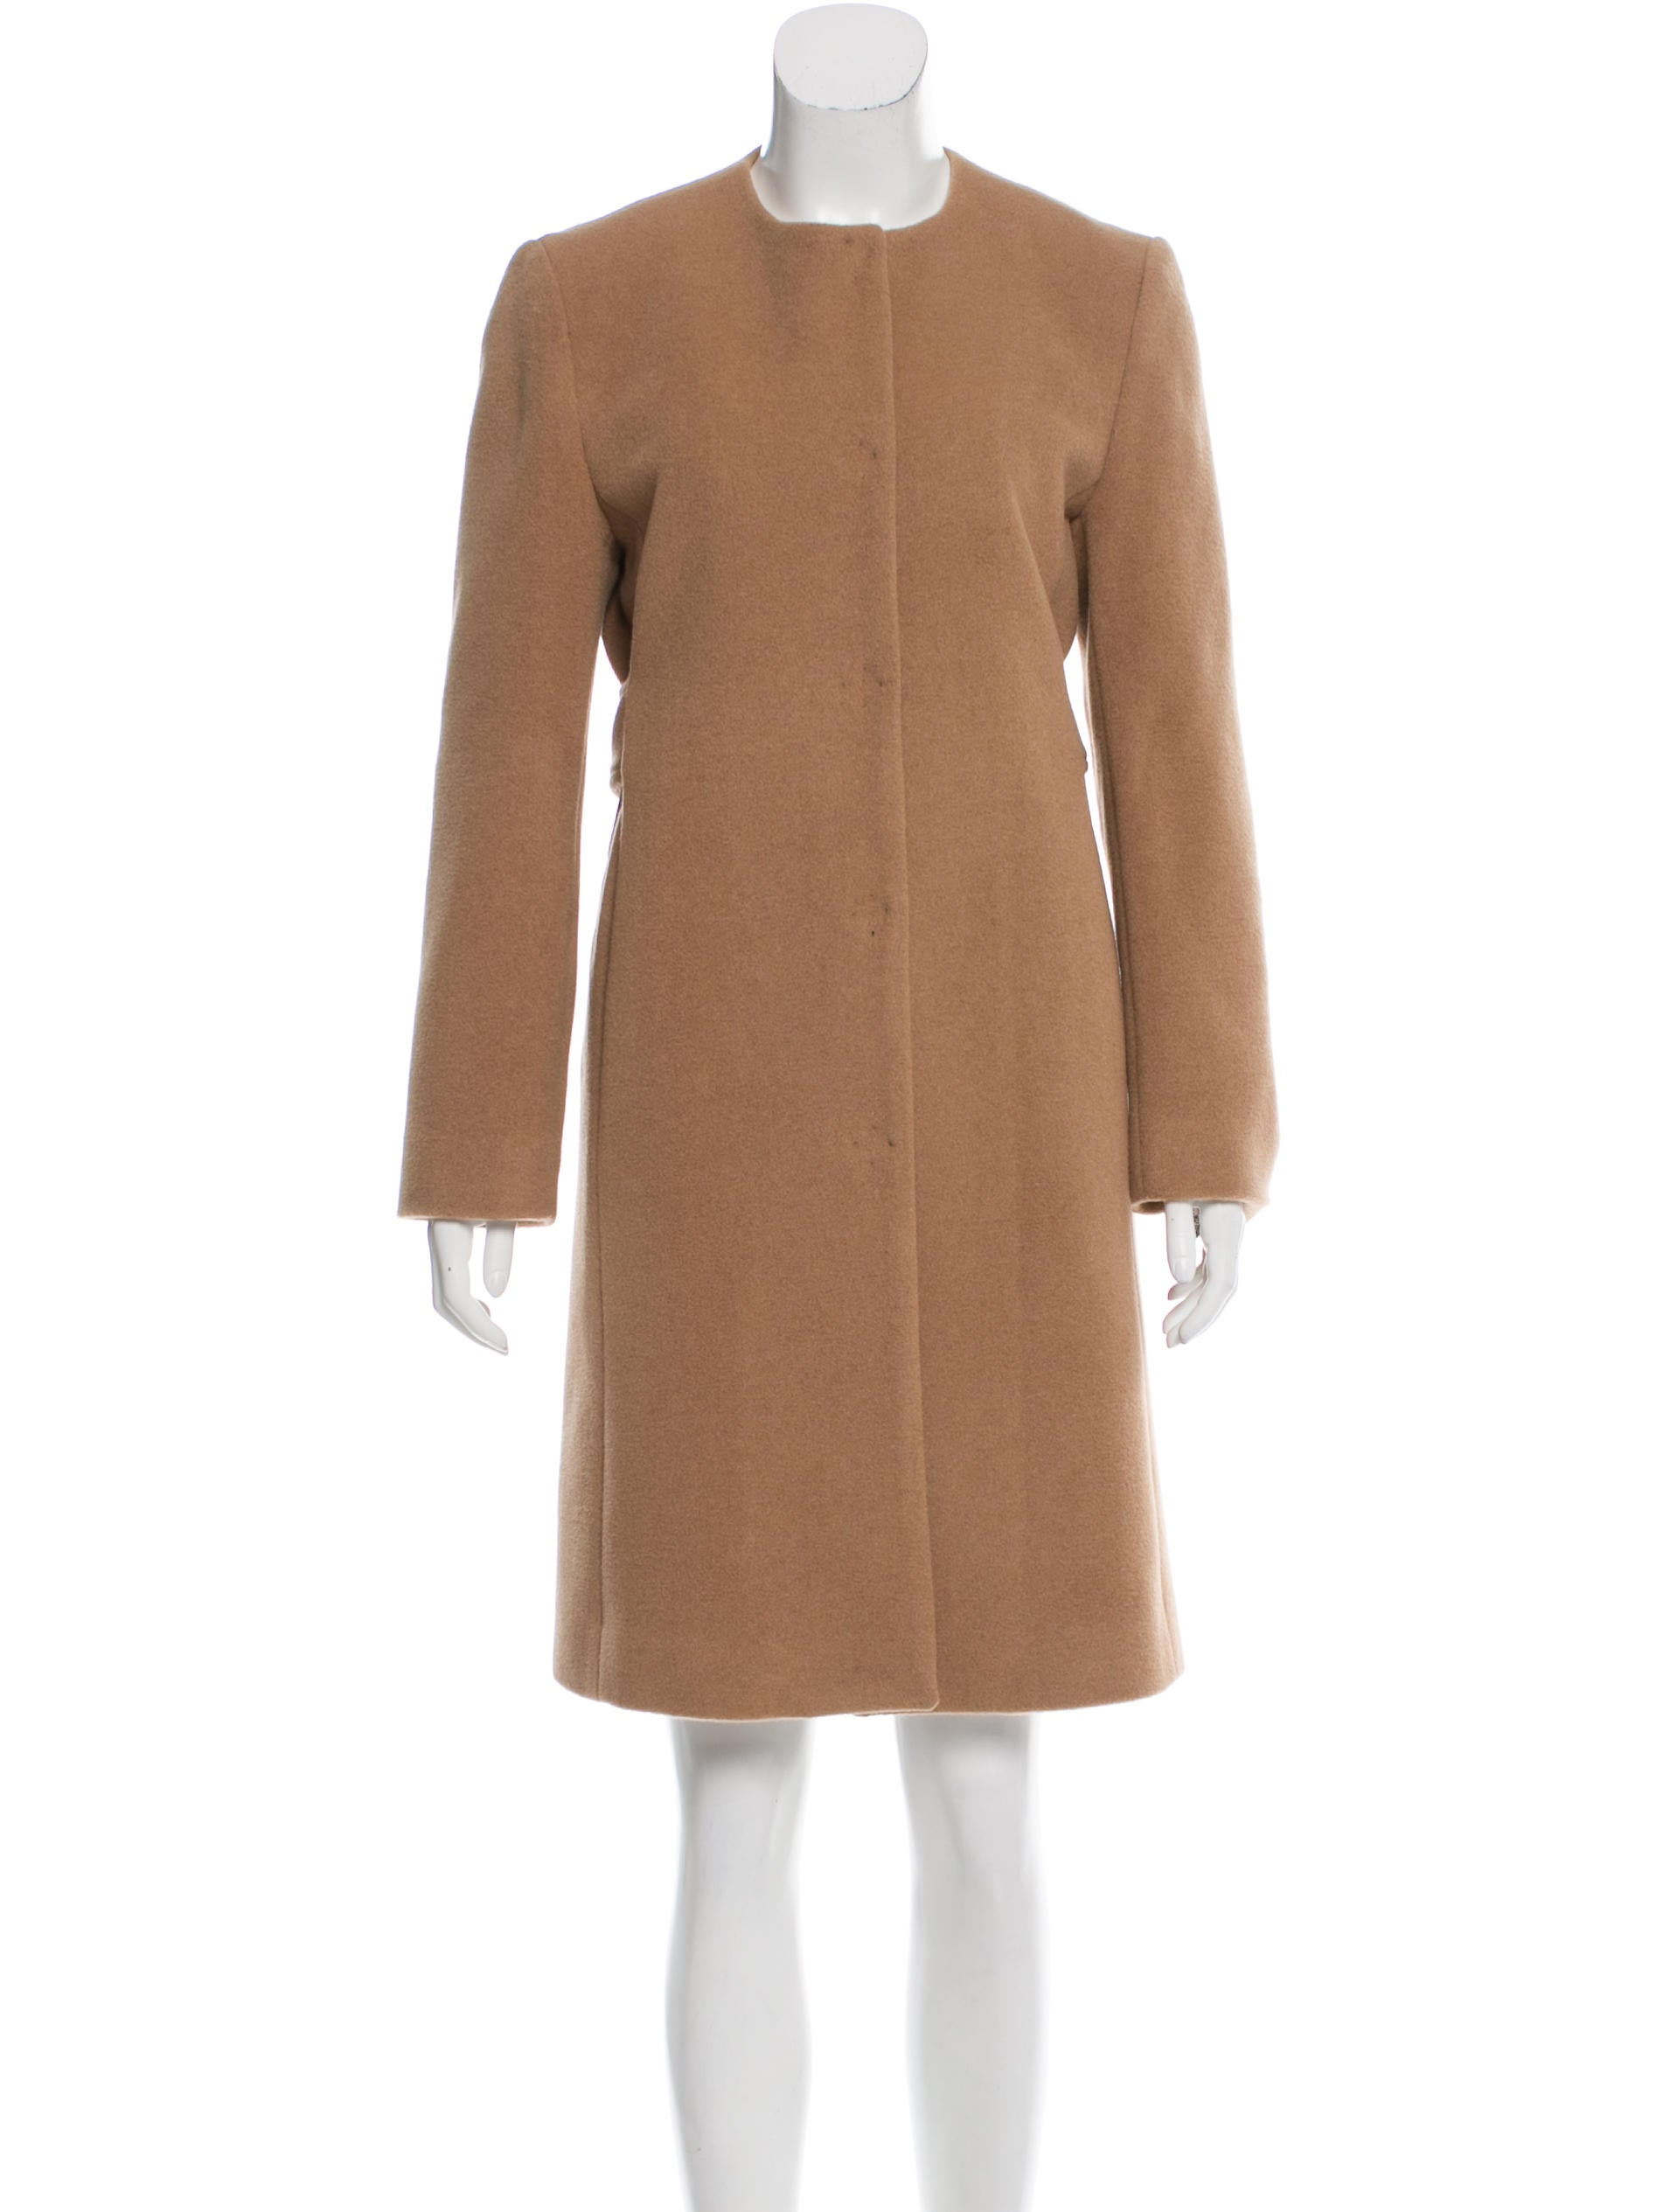 Find camel wool coat at ShopStyle. Shop the latest collection of camel wool coat from the most popular stores - all in one place.